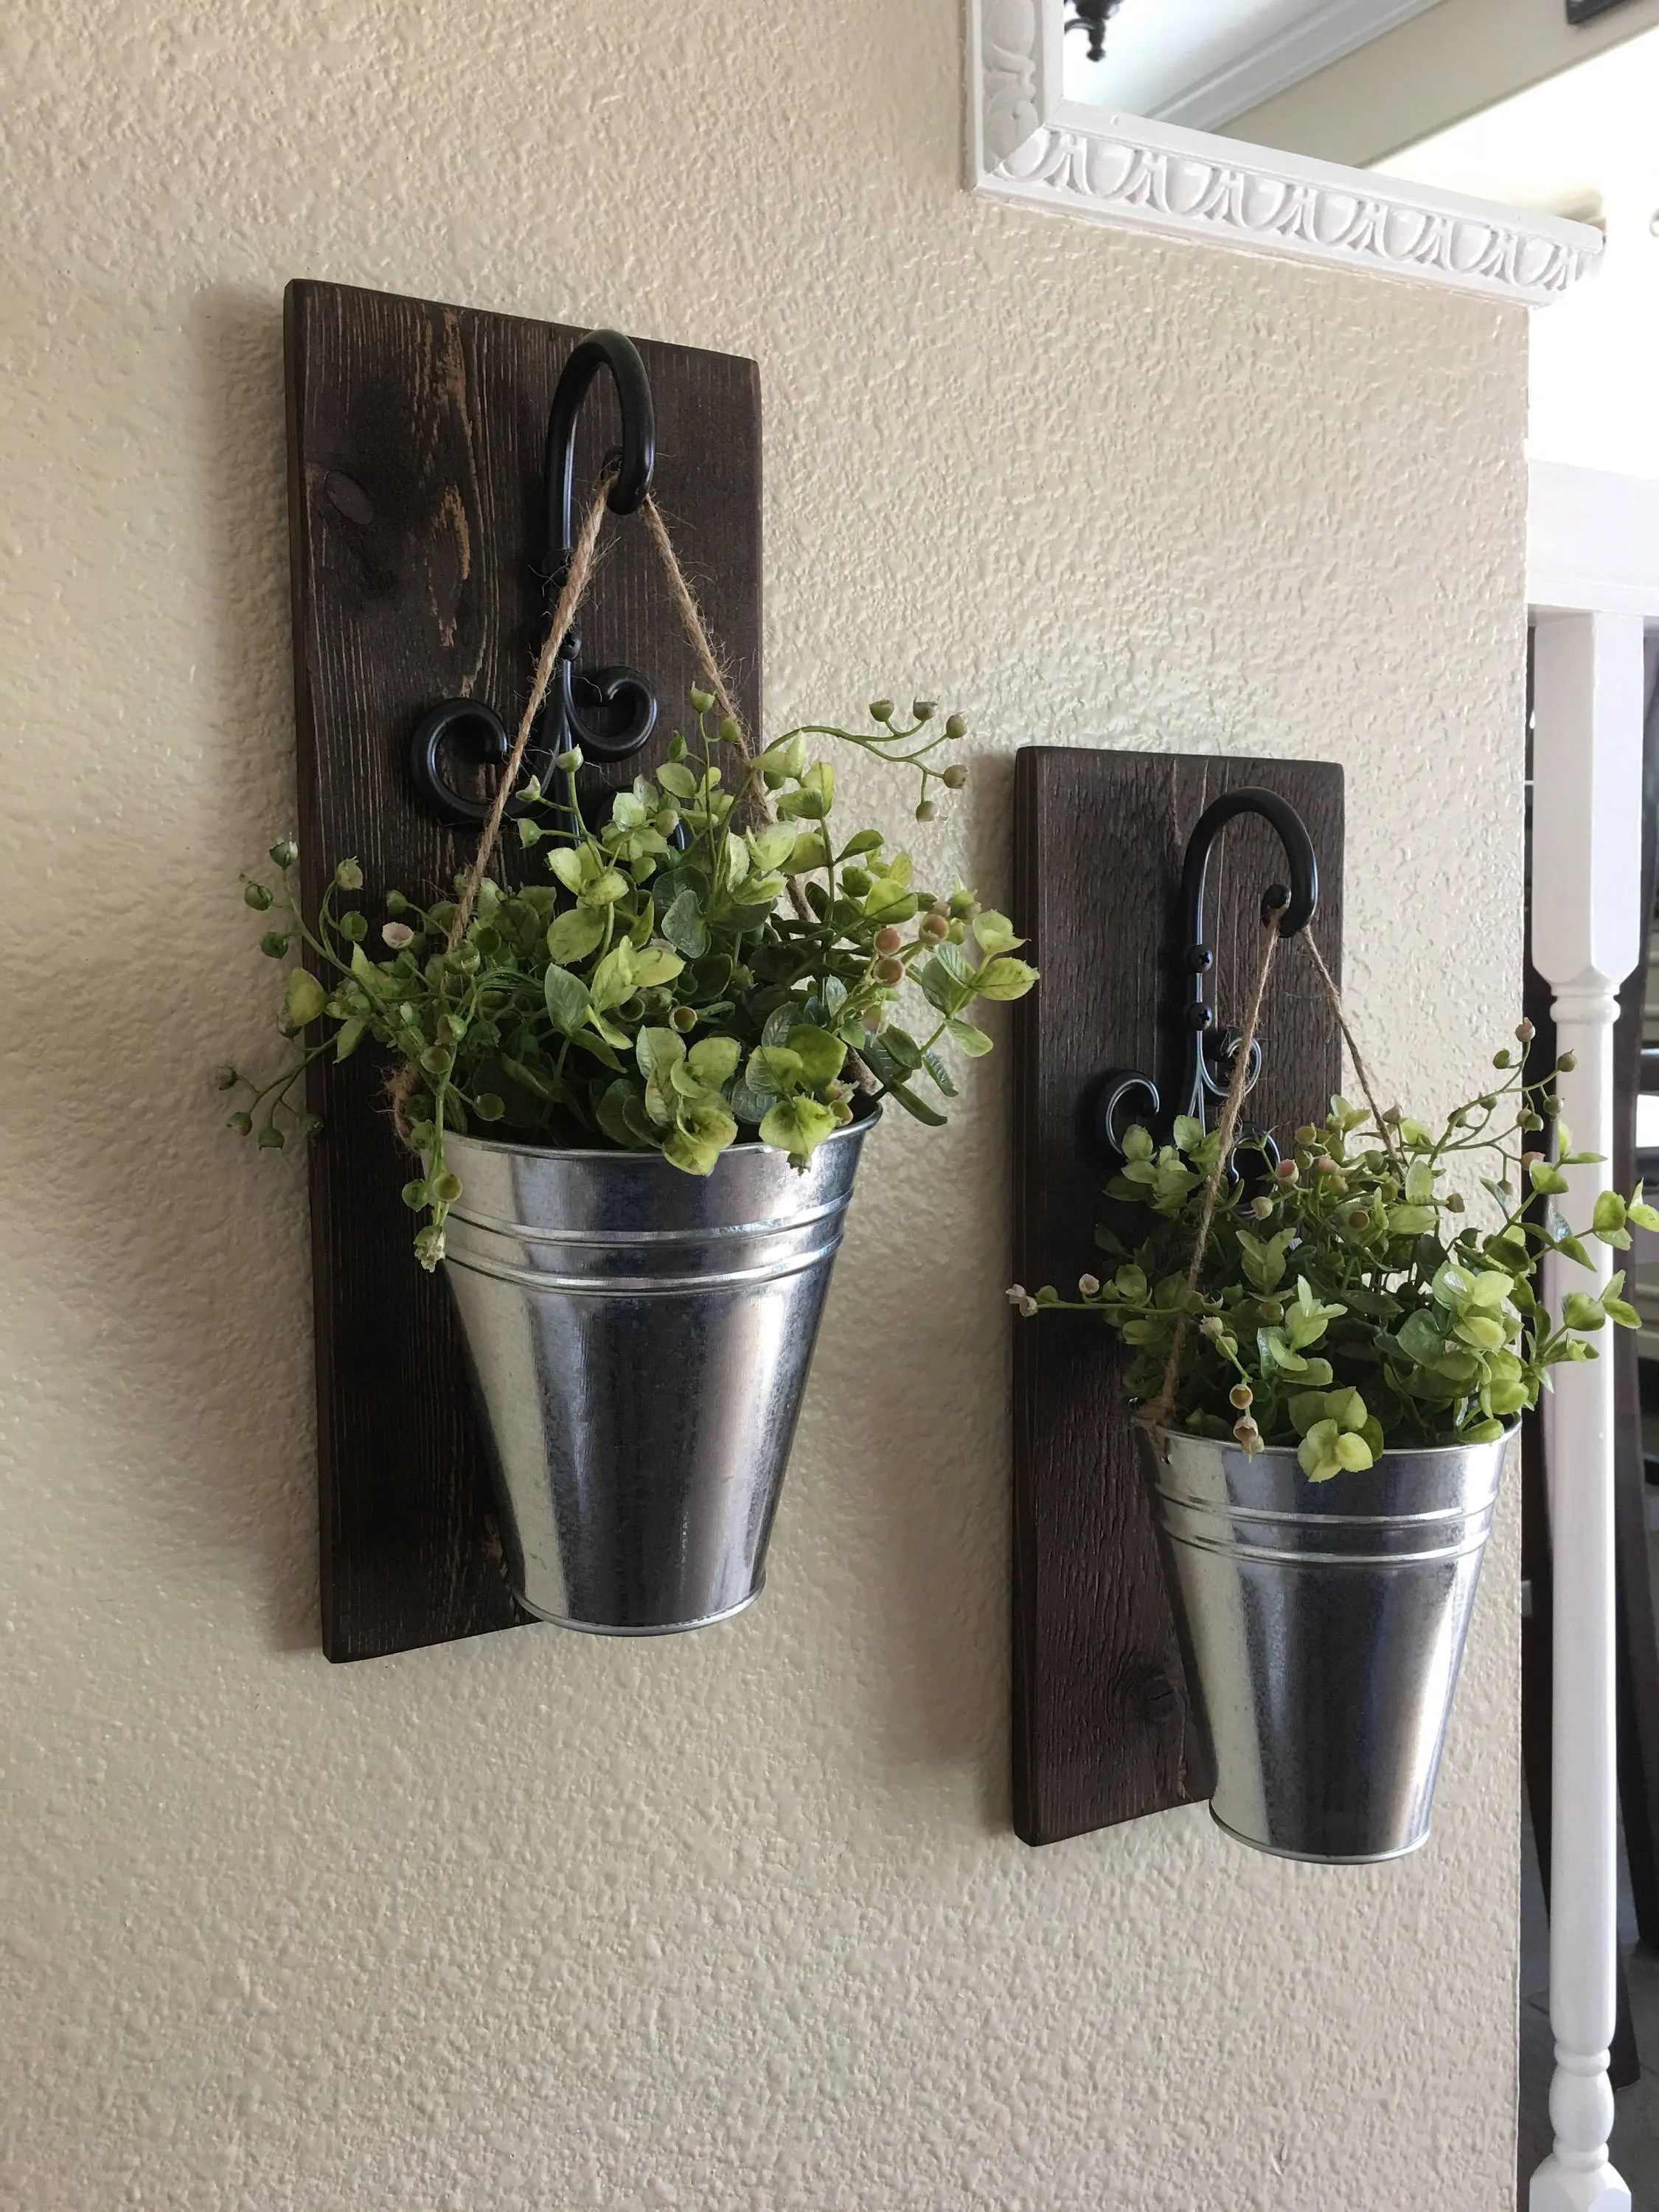 Best Galvanized Metal Decor Metal Wall Decor Sconce With Flowers This Month